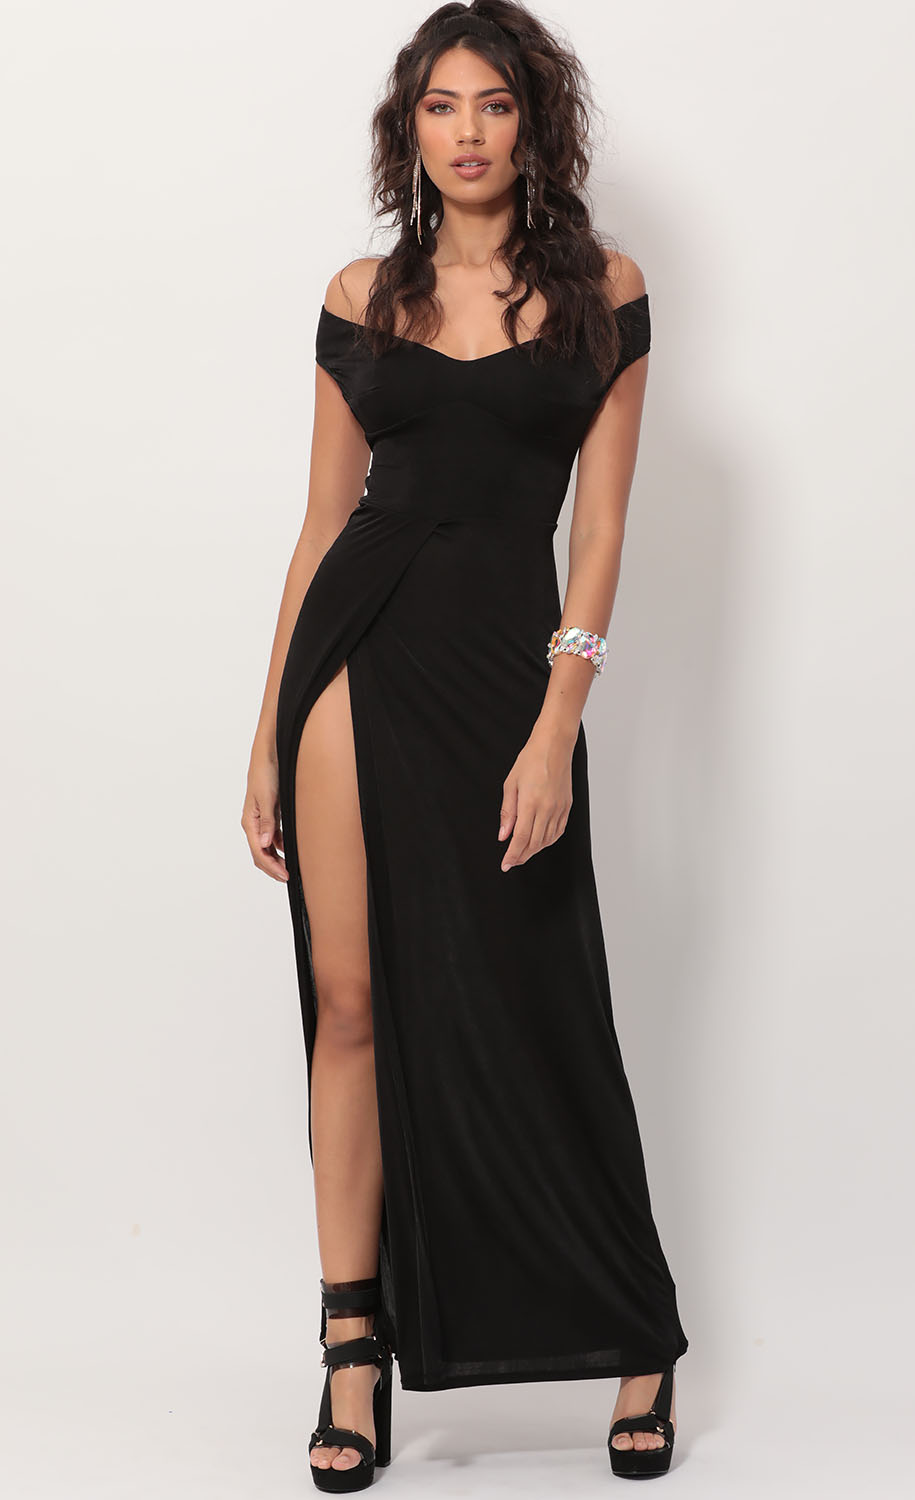 Dianna Luxe Maxi Dress in Black